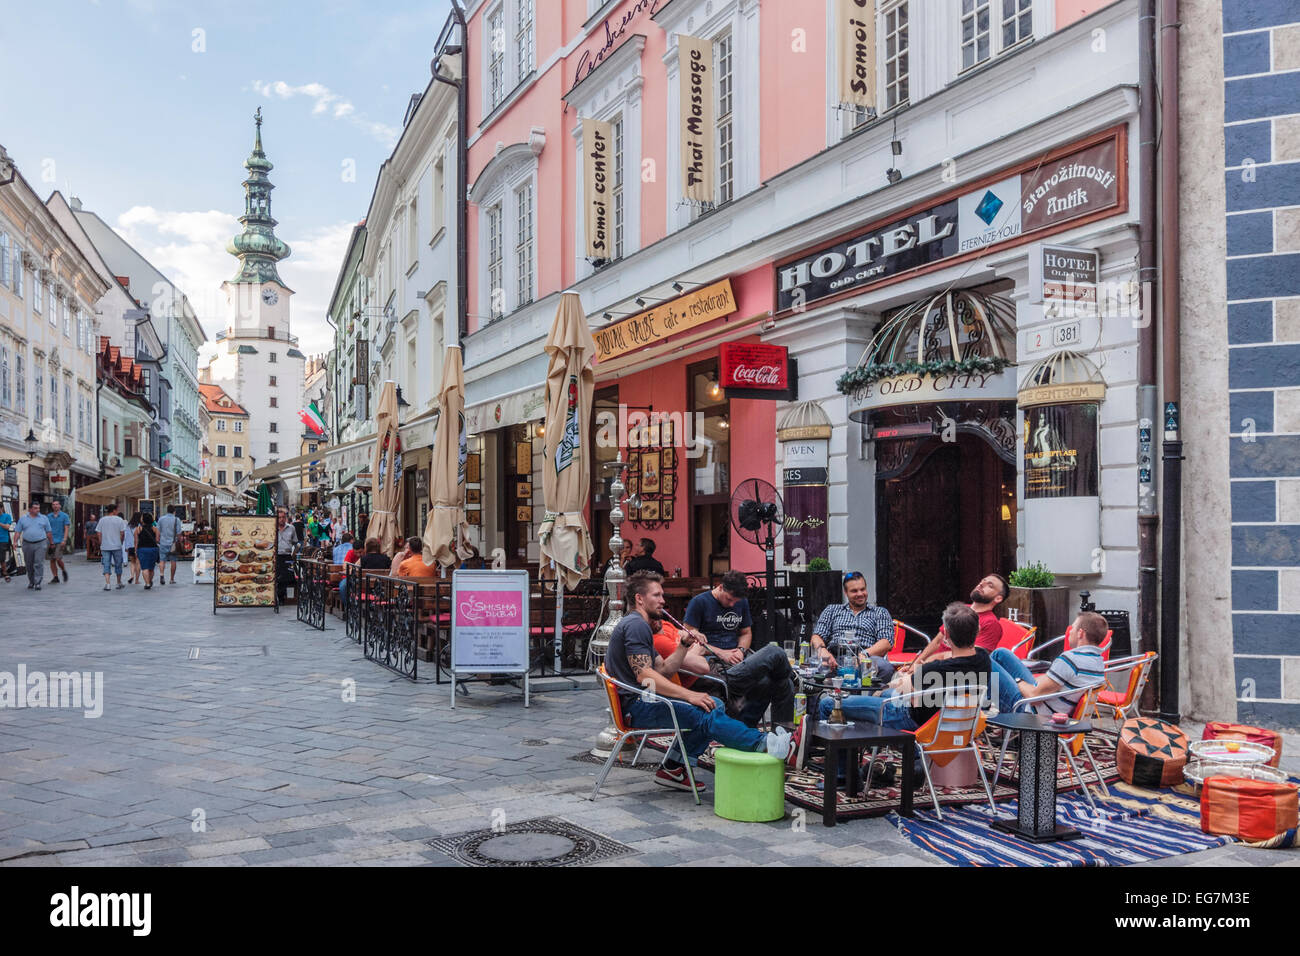 Tourists at a terrace cafe in Venturska Michalska the Old Town´s main street with Michael's Gate in background. - Stock Image